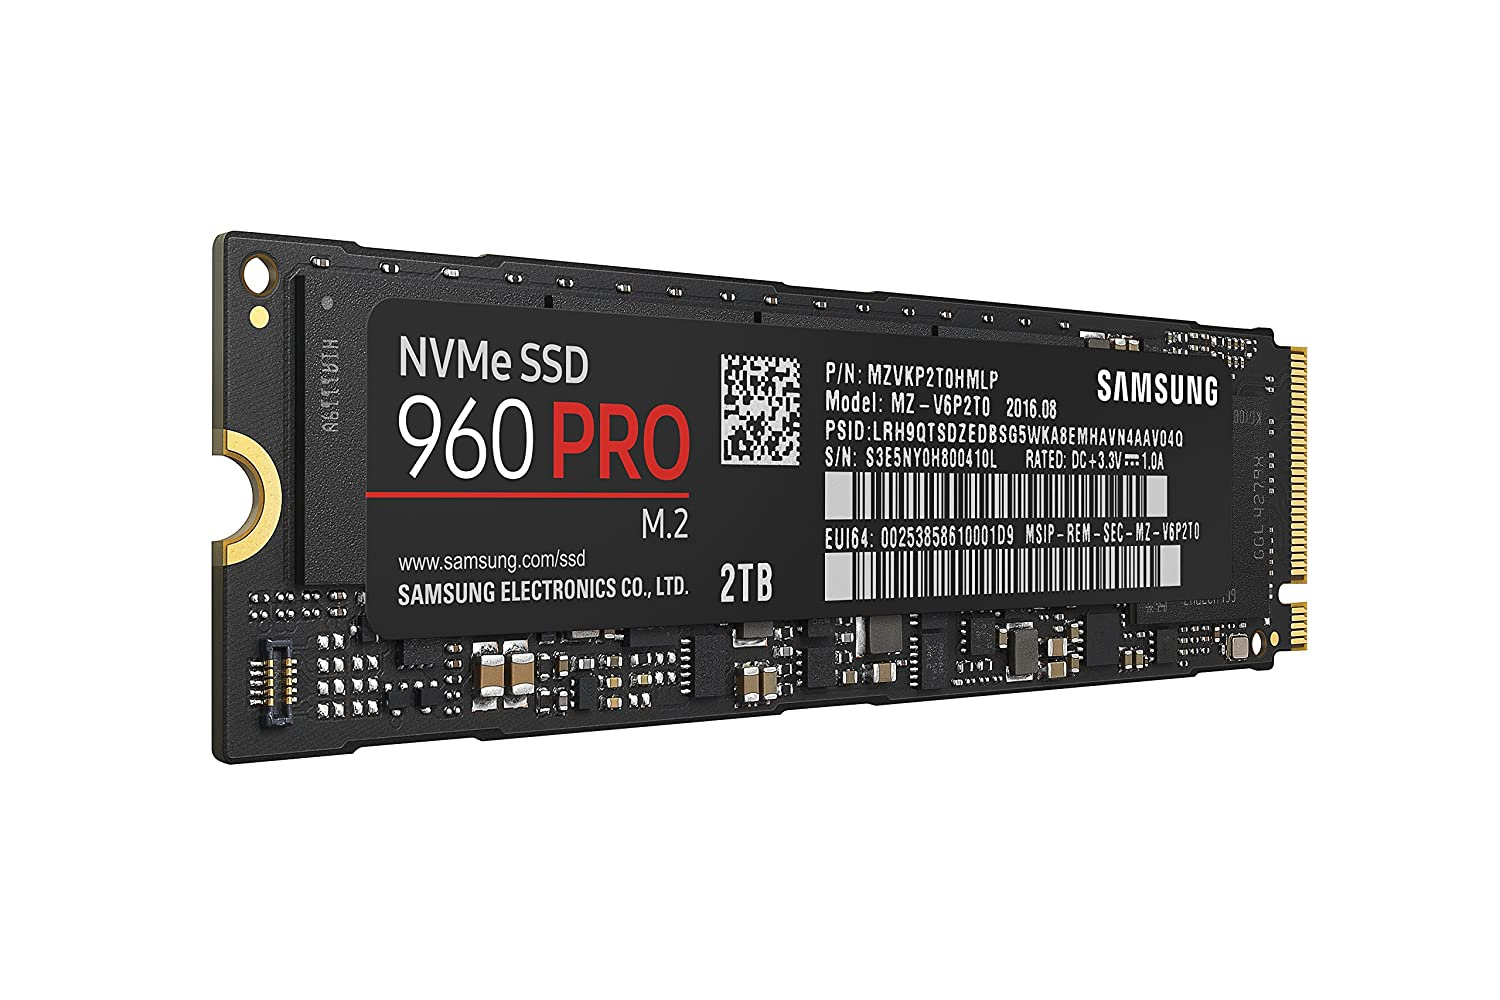 Samsung 960 Pro M.2 2TB Review – The best just got better